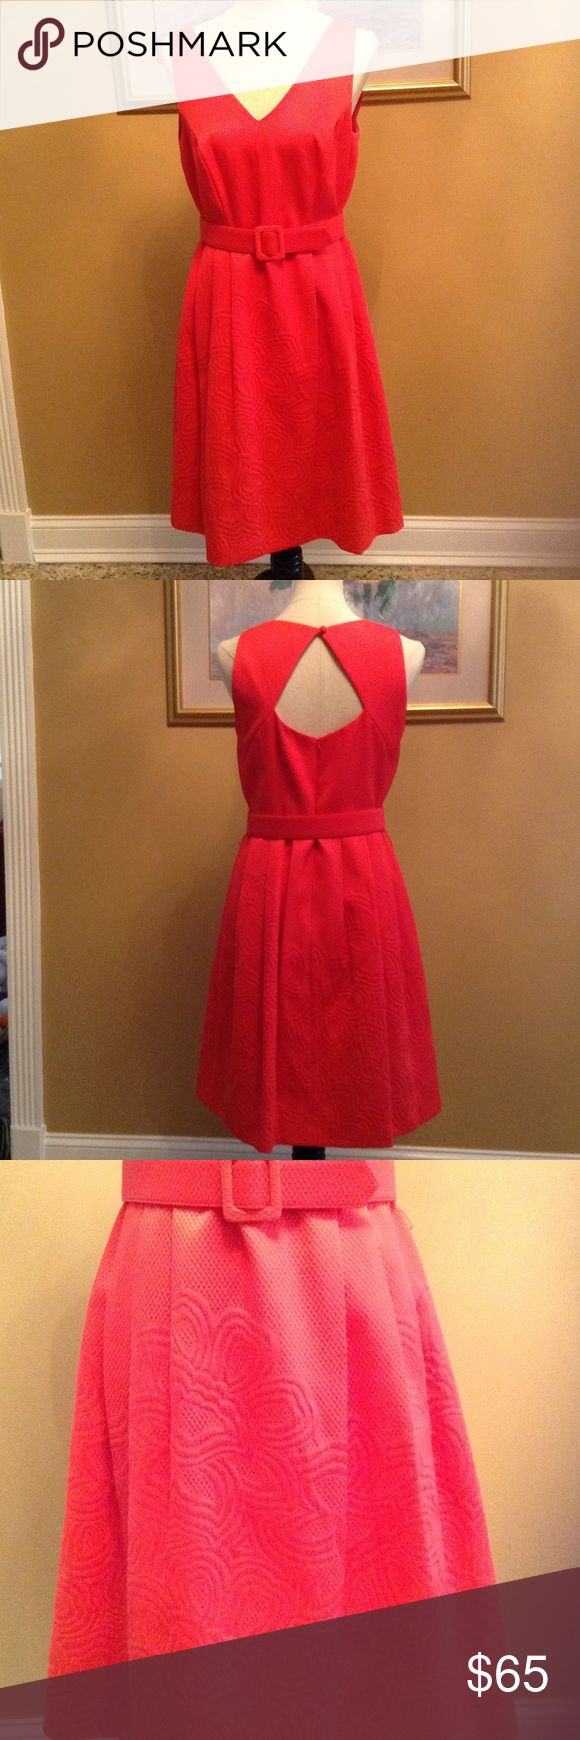 Red dress Beautiful red dress Kay Unger Dresses